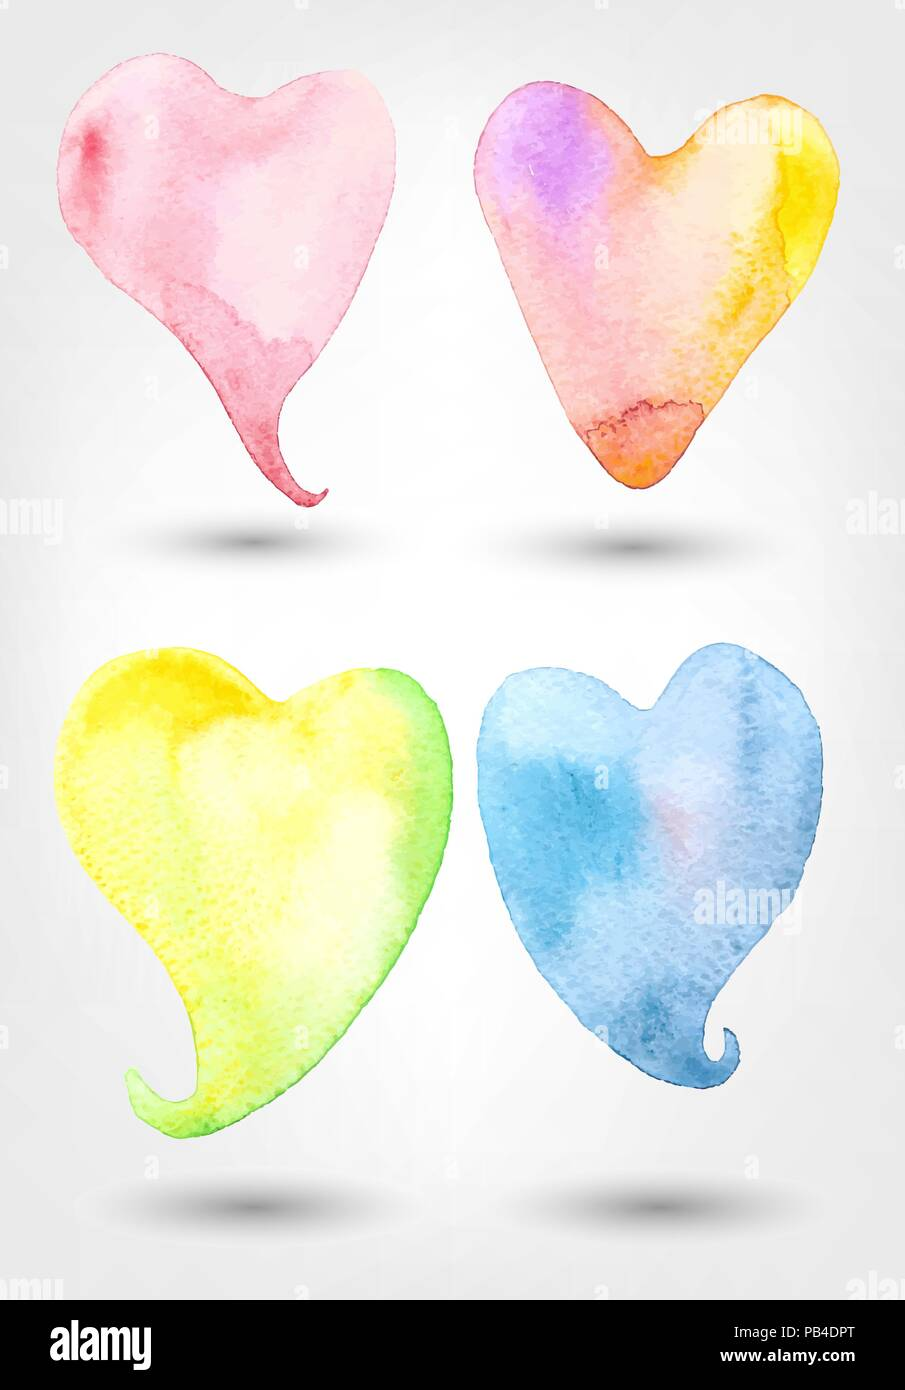 Vector Set Of Watercolor Heart Shapes - Stock Image